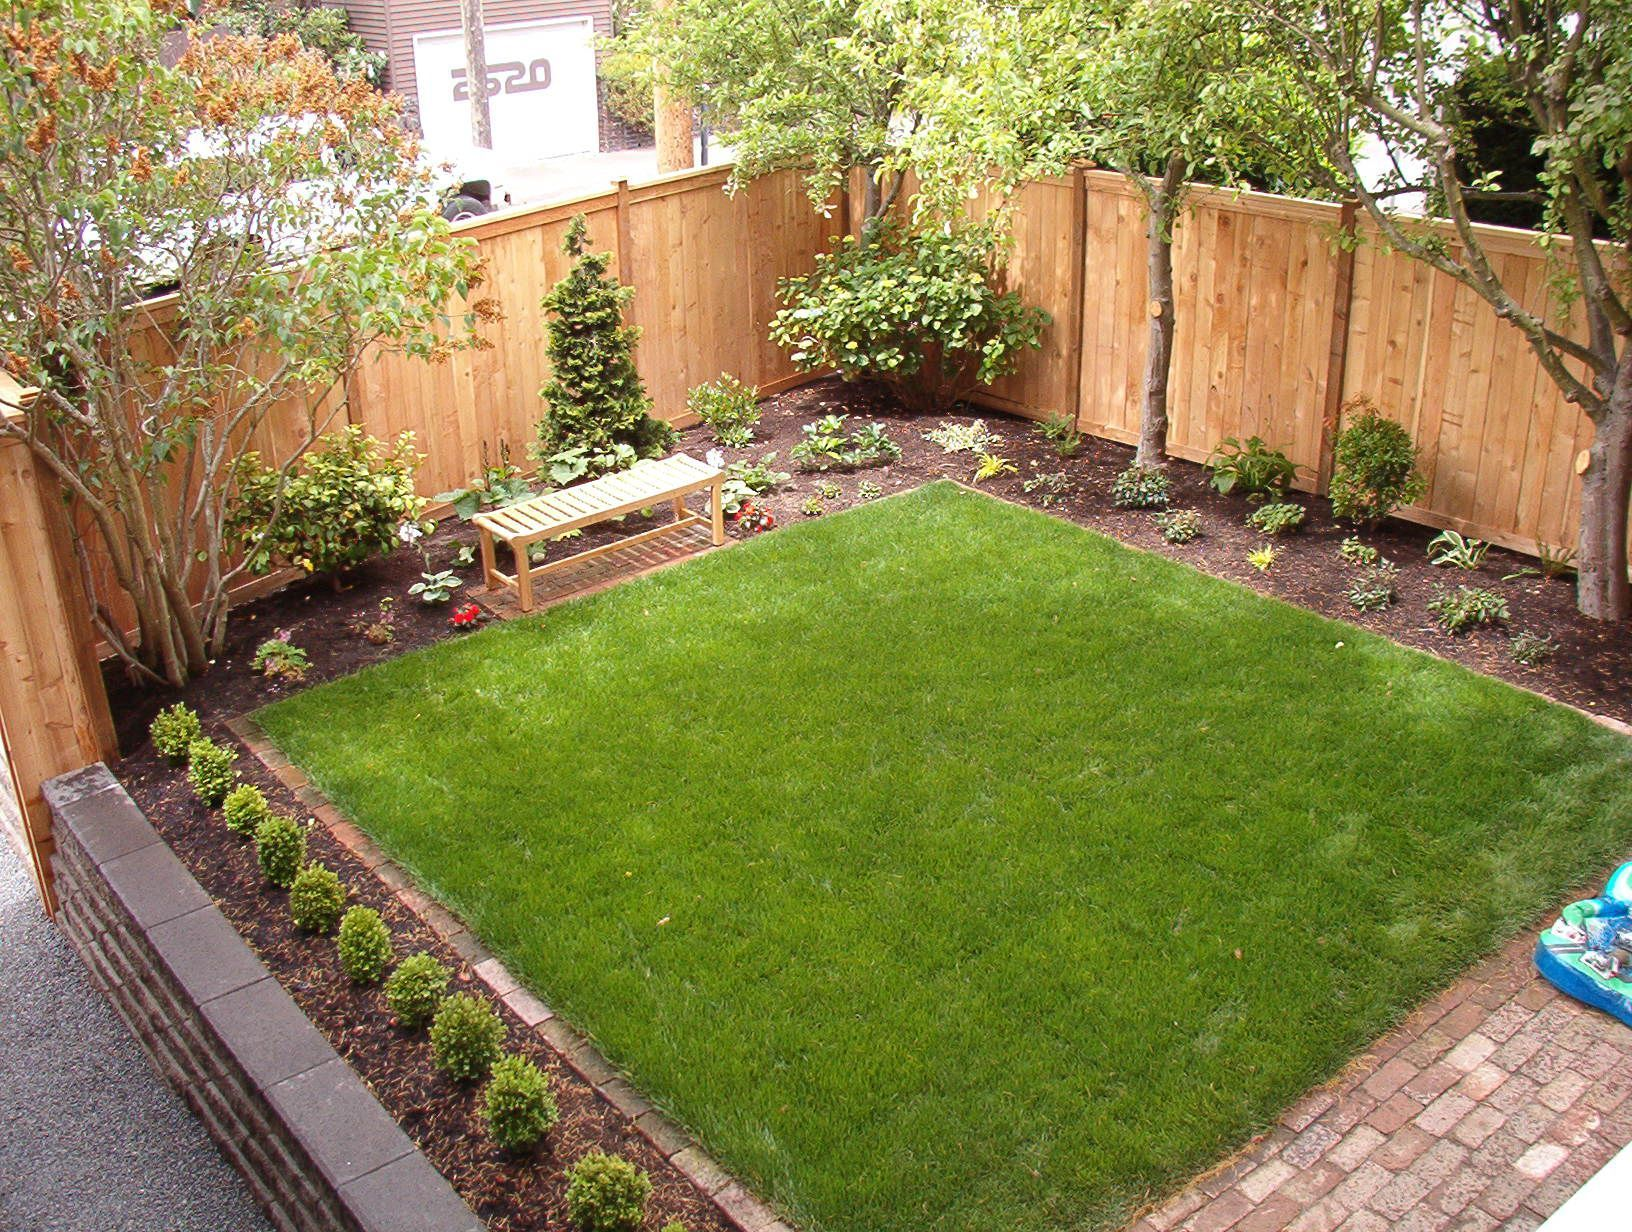 Inspirational Backyard Design Ideas For Small Yards